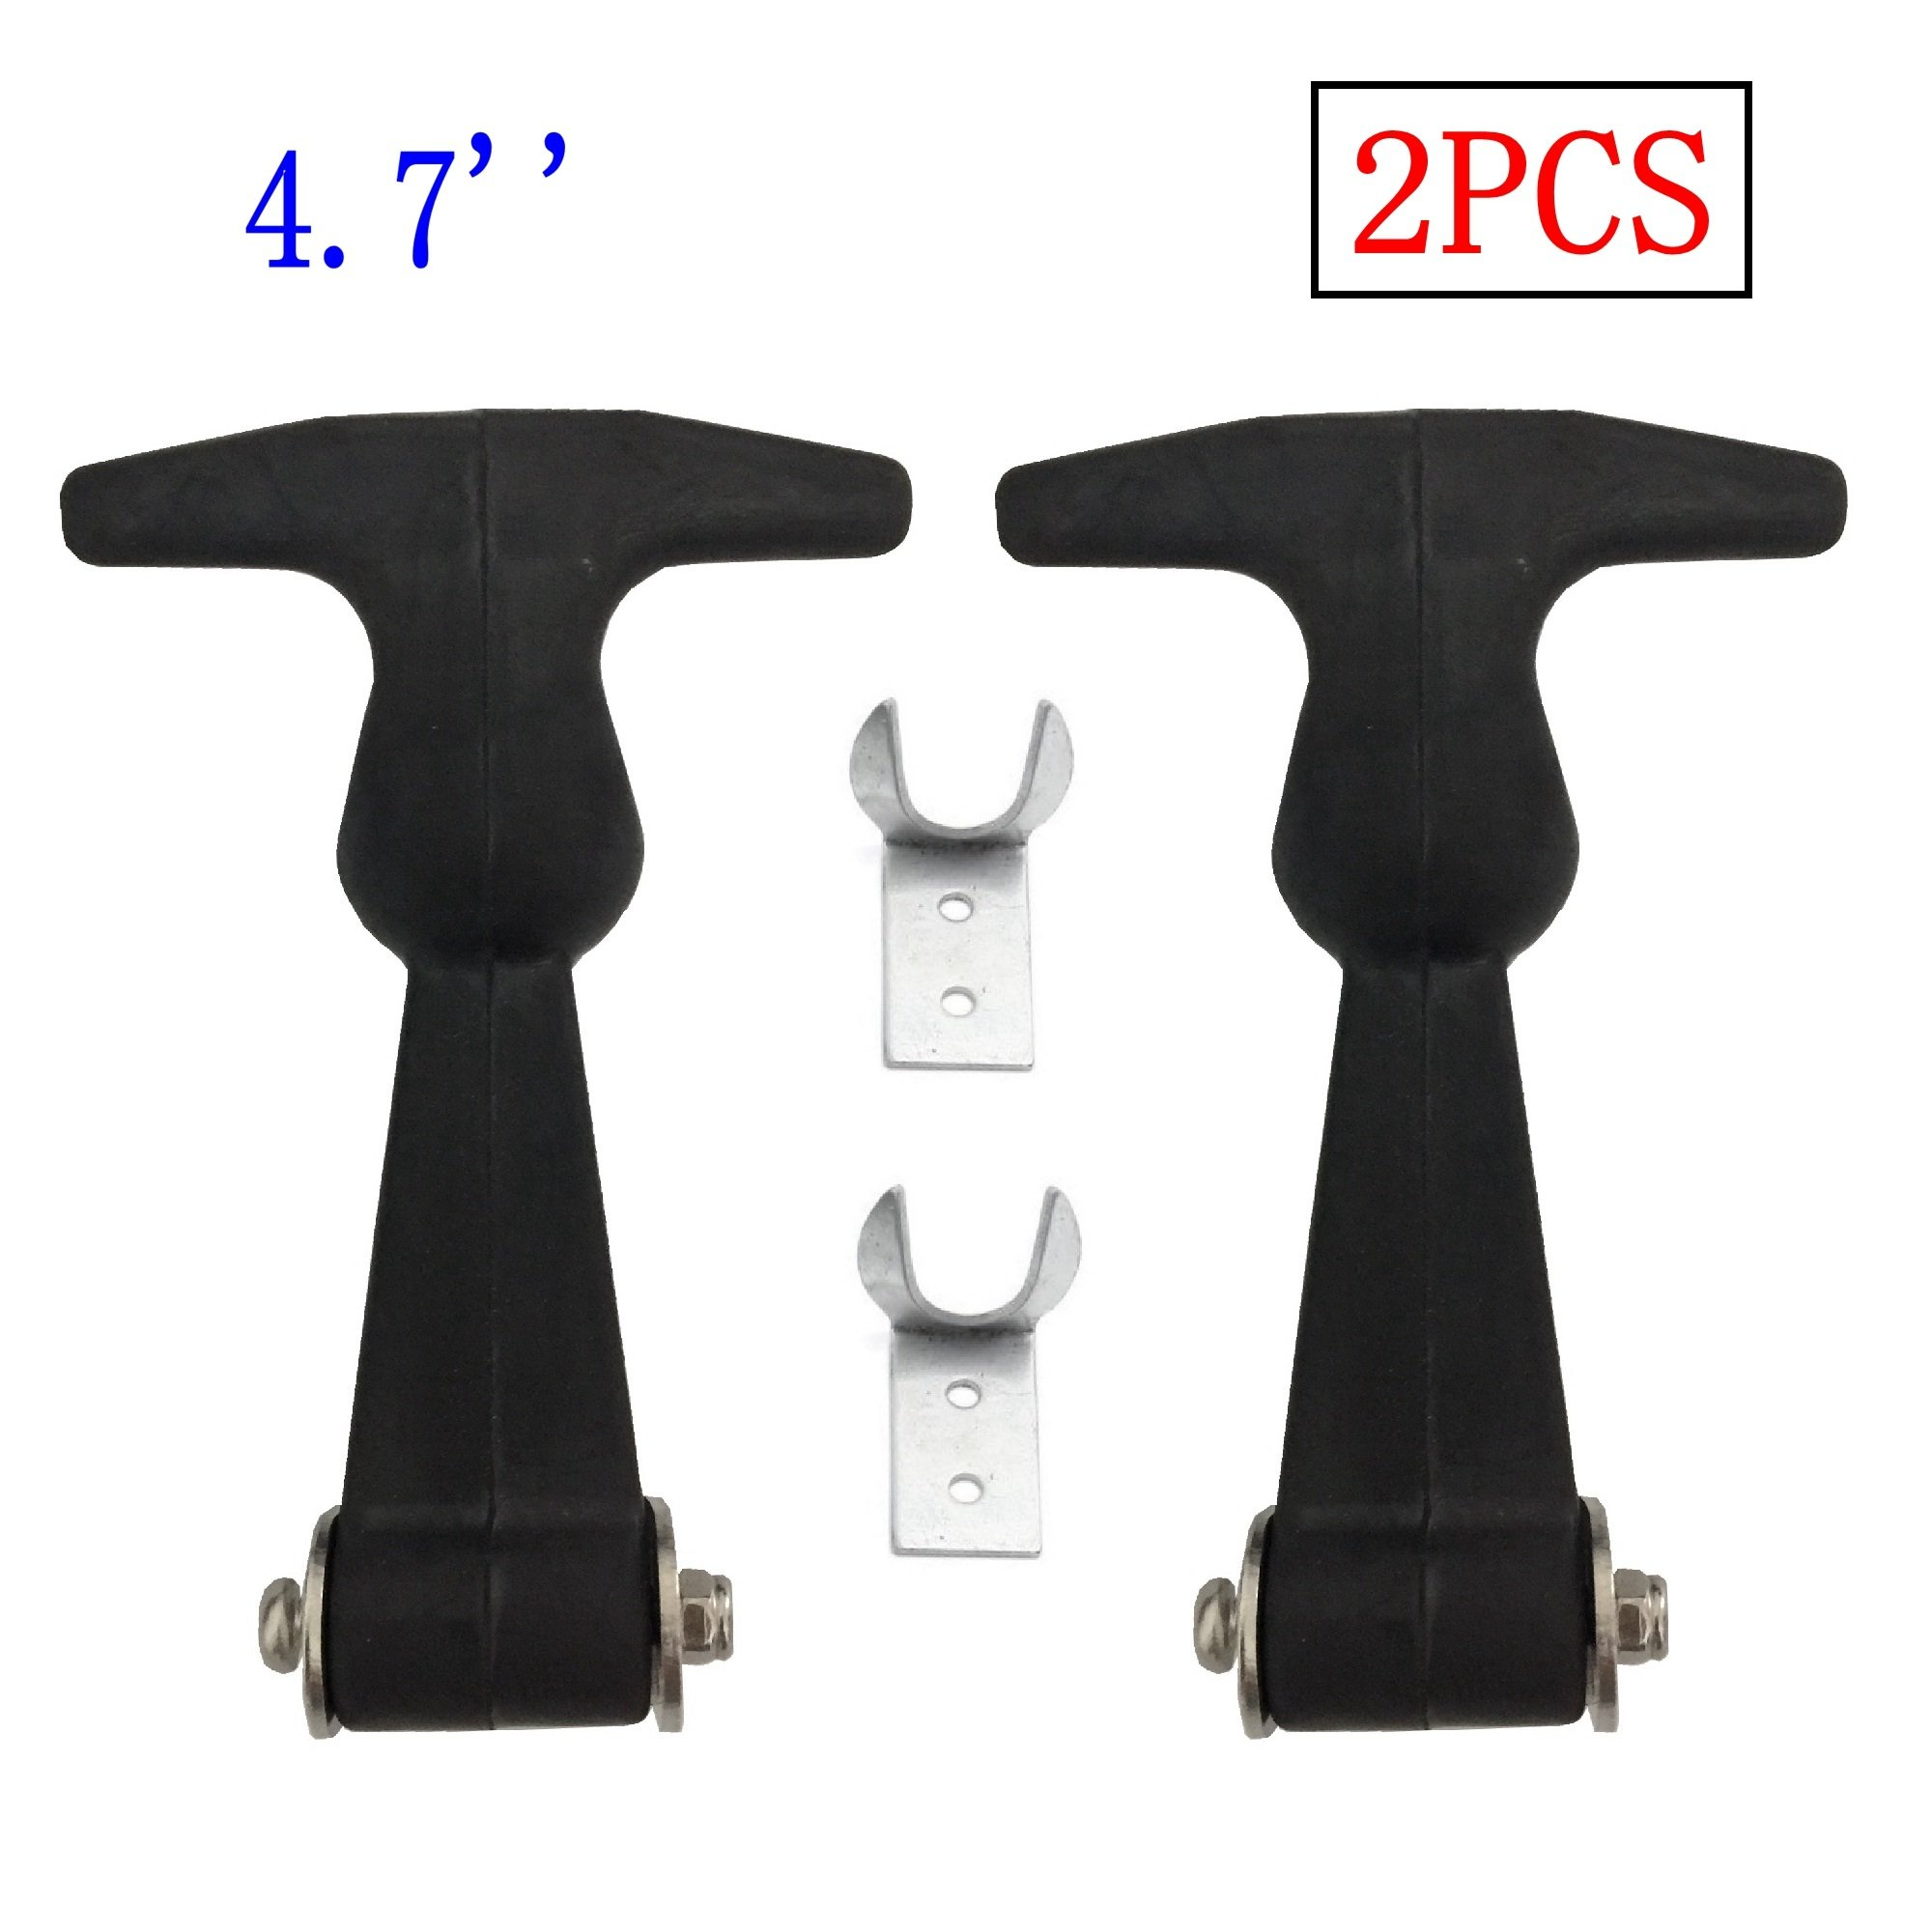 Creatyi 2 PCS 4.7'' Rubber Flexible Heavy Duty Premium SUS304 Stainless Steel T-Handle Draw Latches